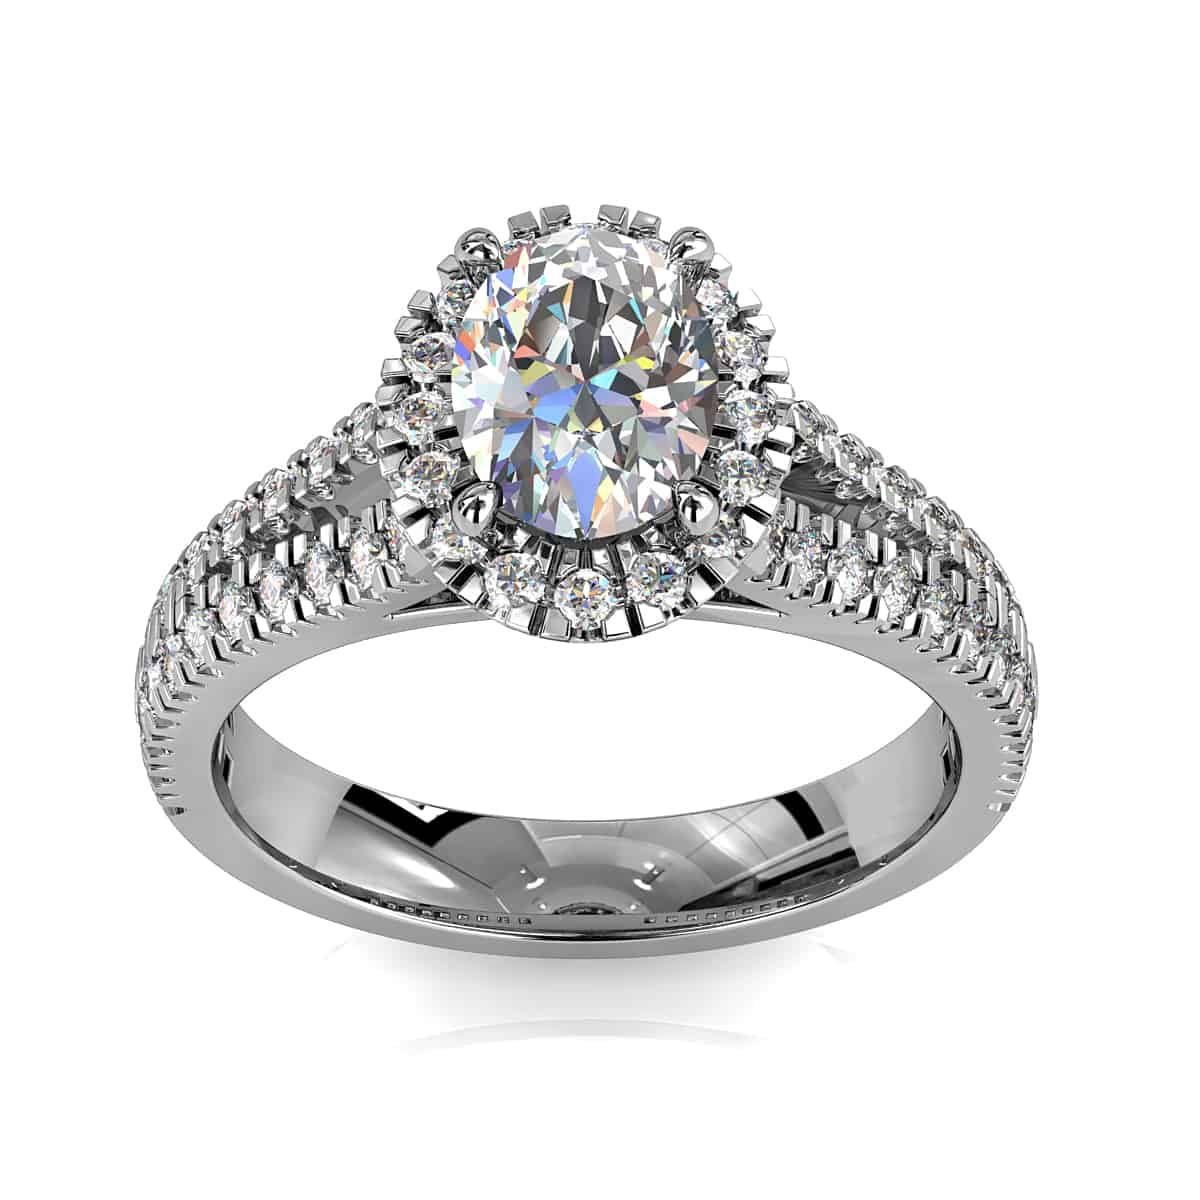 Oval Cut Halo Diamond Engagement Ring, 4 Round Claws set in a Cut Claw Halo with a Fine Cut Claw Split Band.